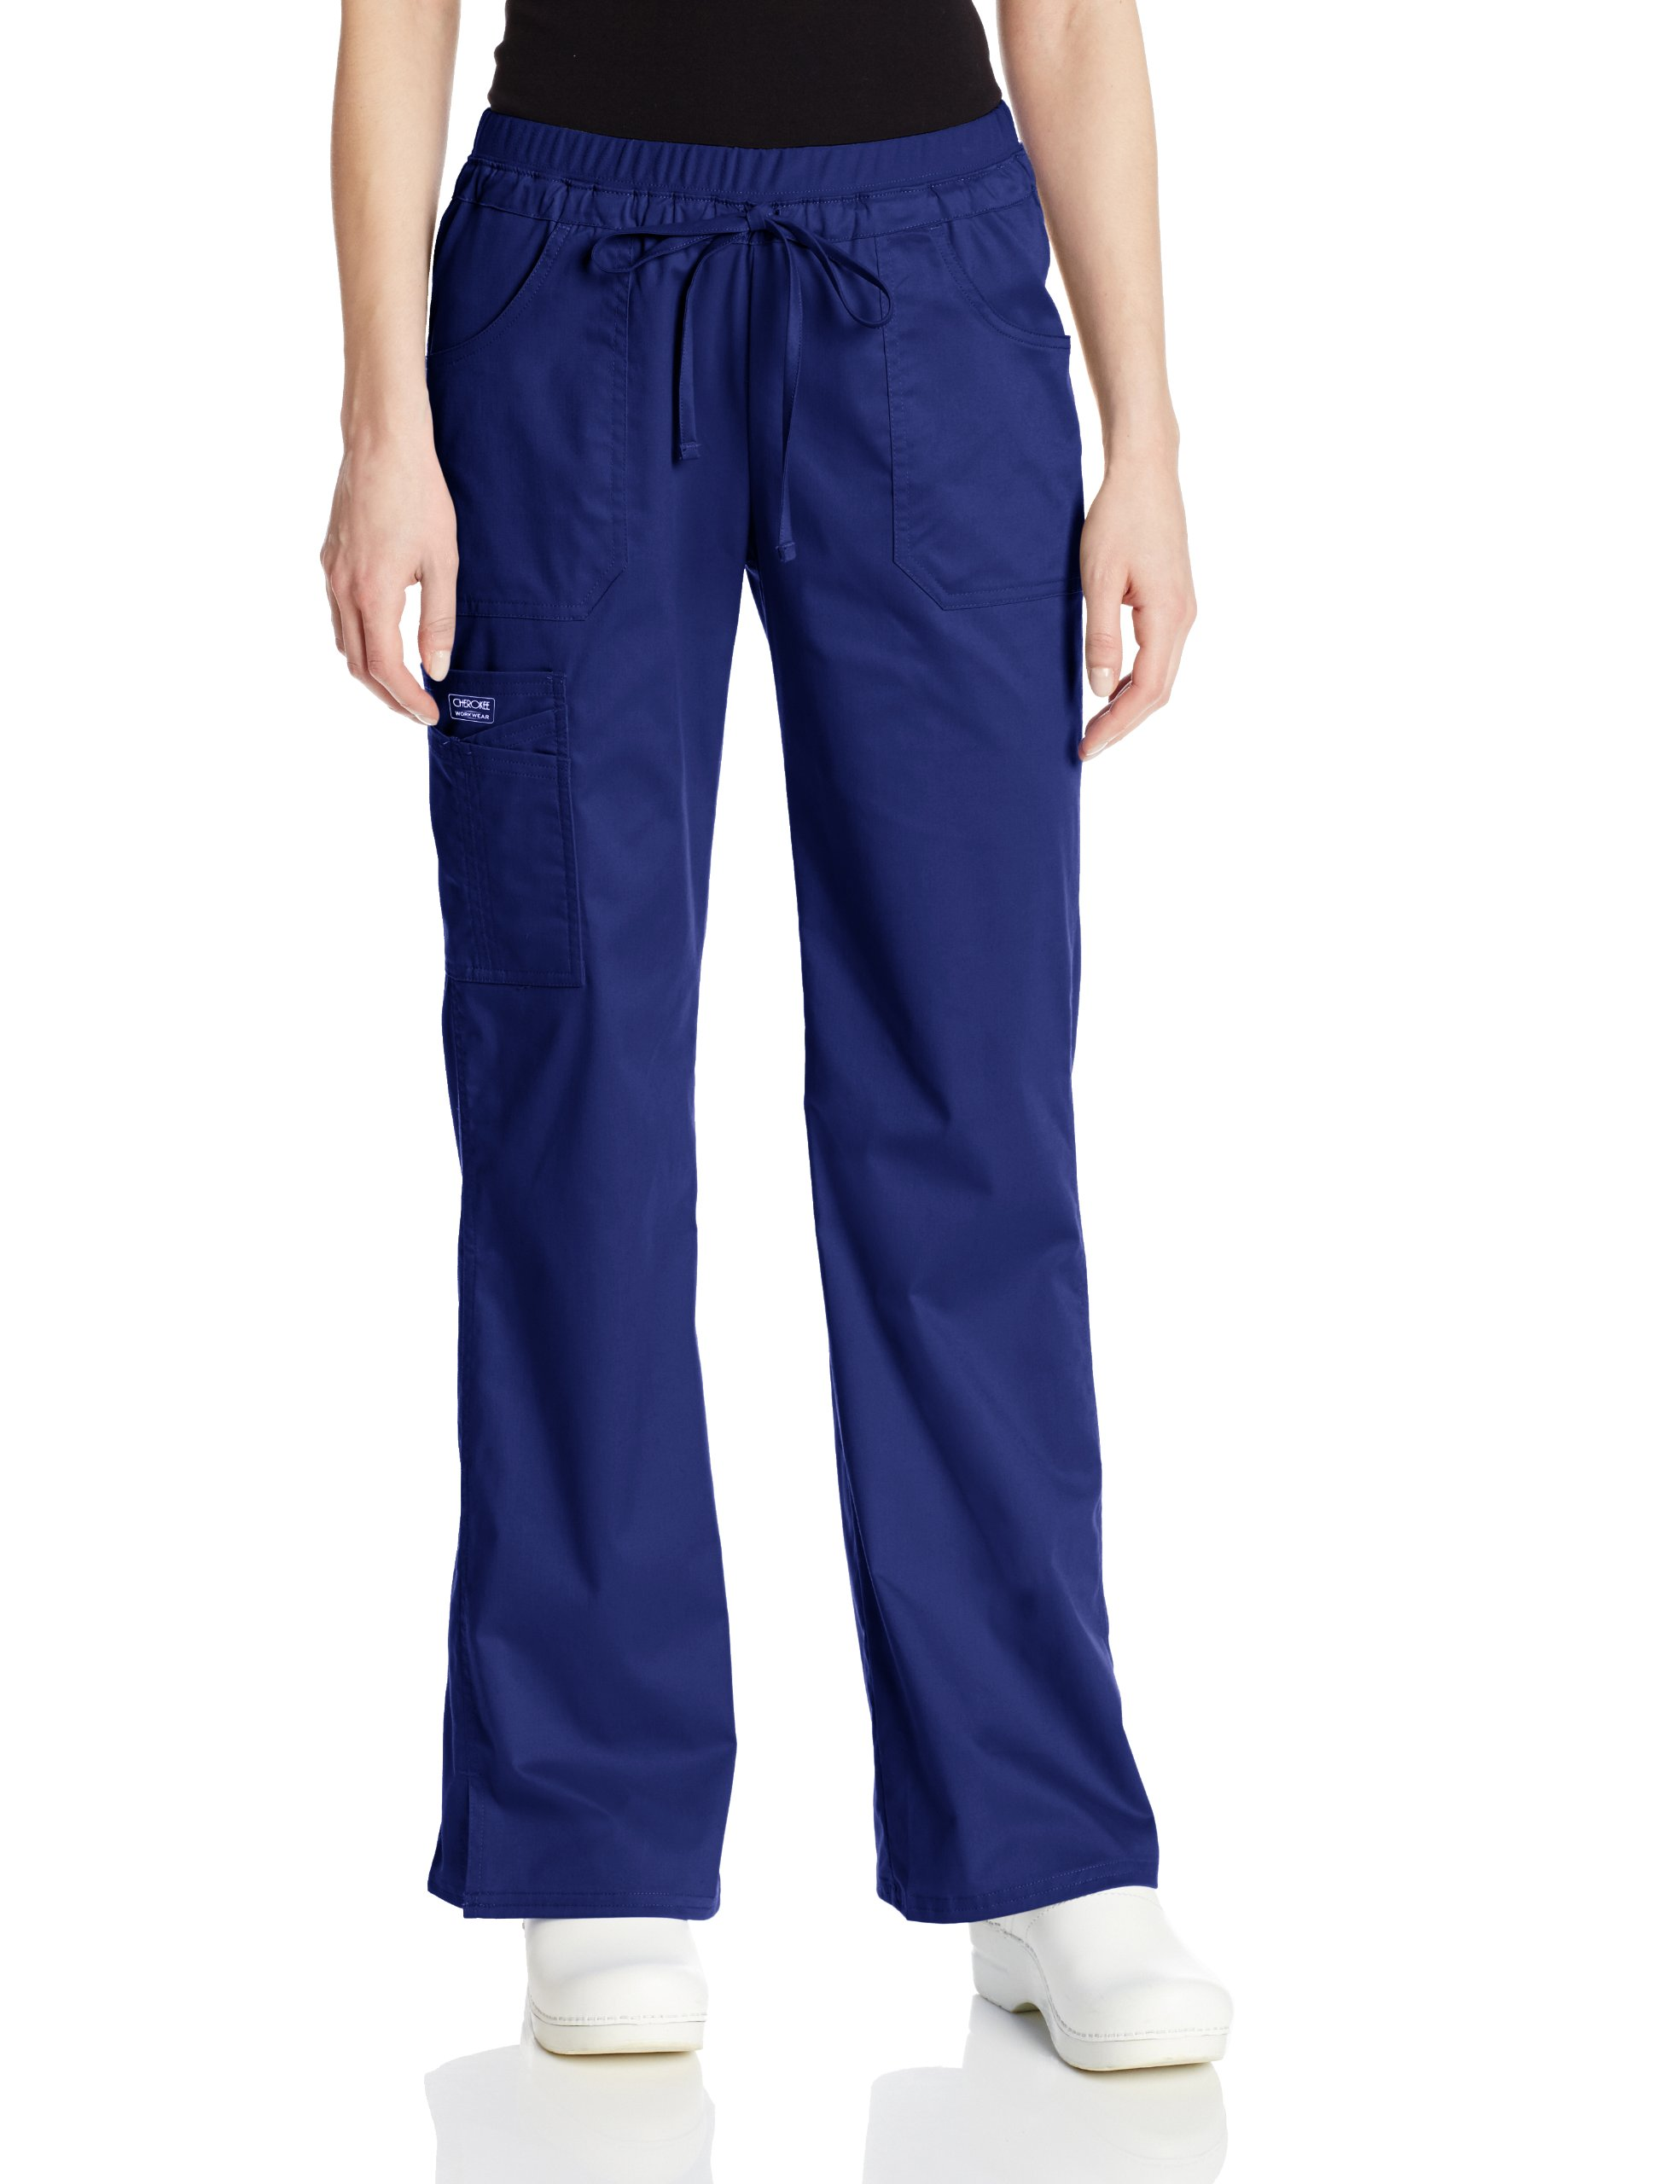 Cherokee Women's Workwear Scrubs Core Stretch Jr. Fit Low-Rise Cargo Pant, Navy, Small